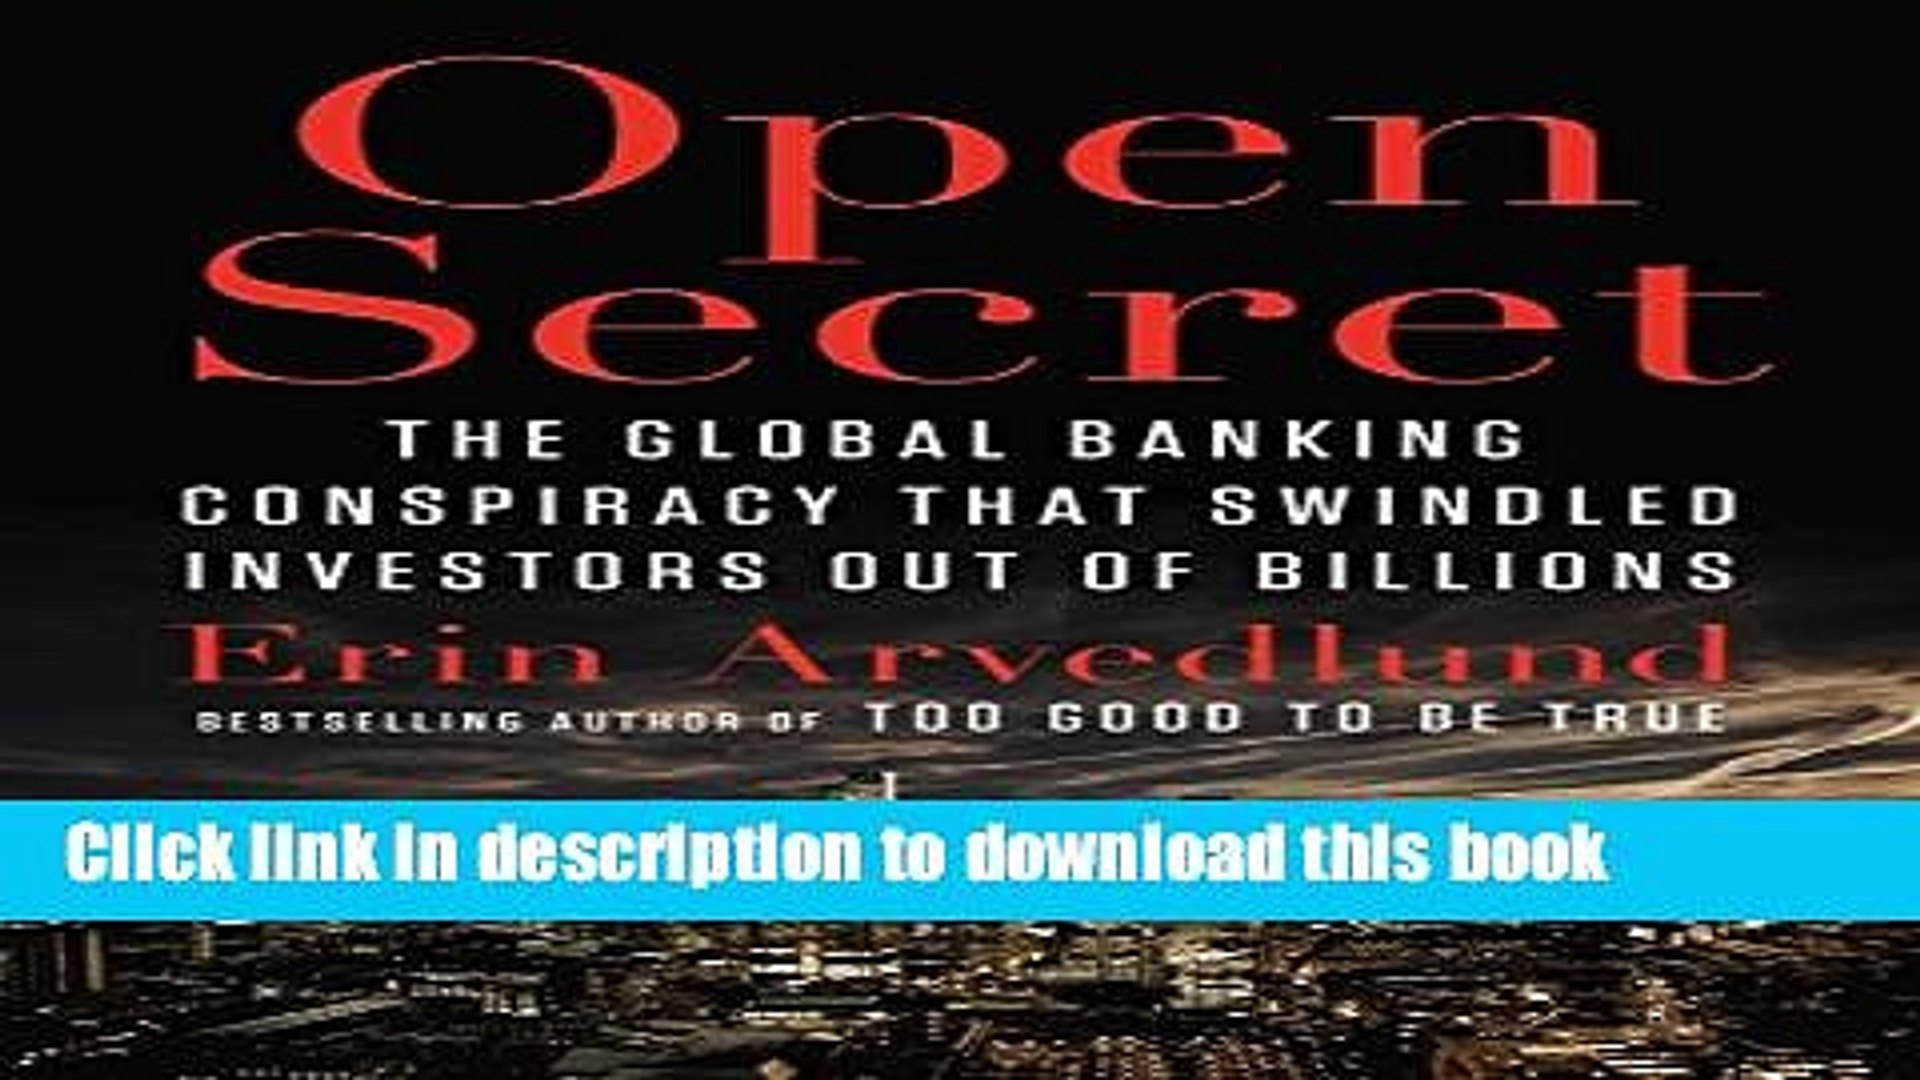 Books Open Secret: The Global Banking Conspiracy That Swindled Investors Out of Billions Full Online